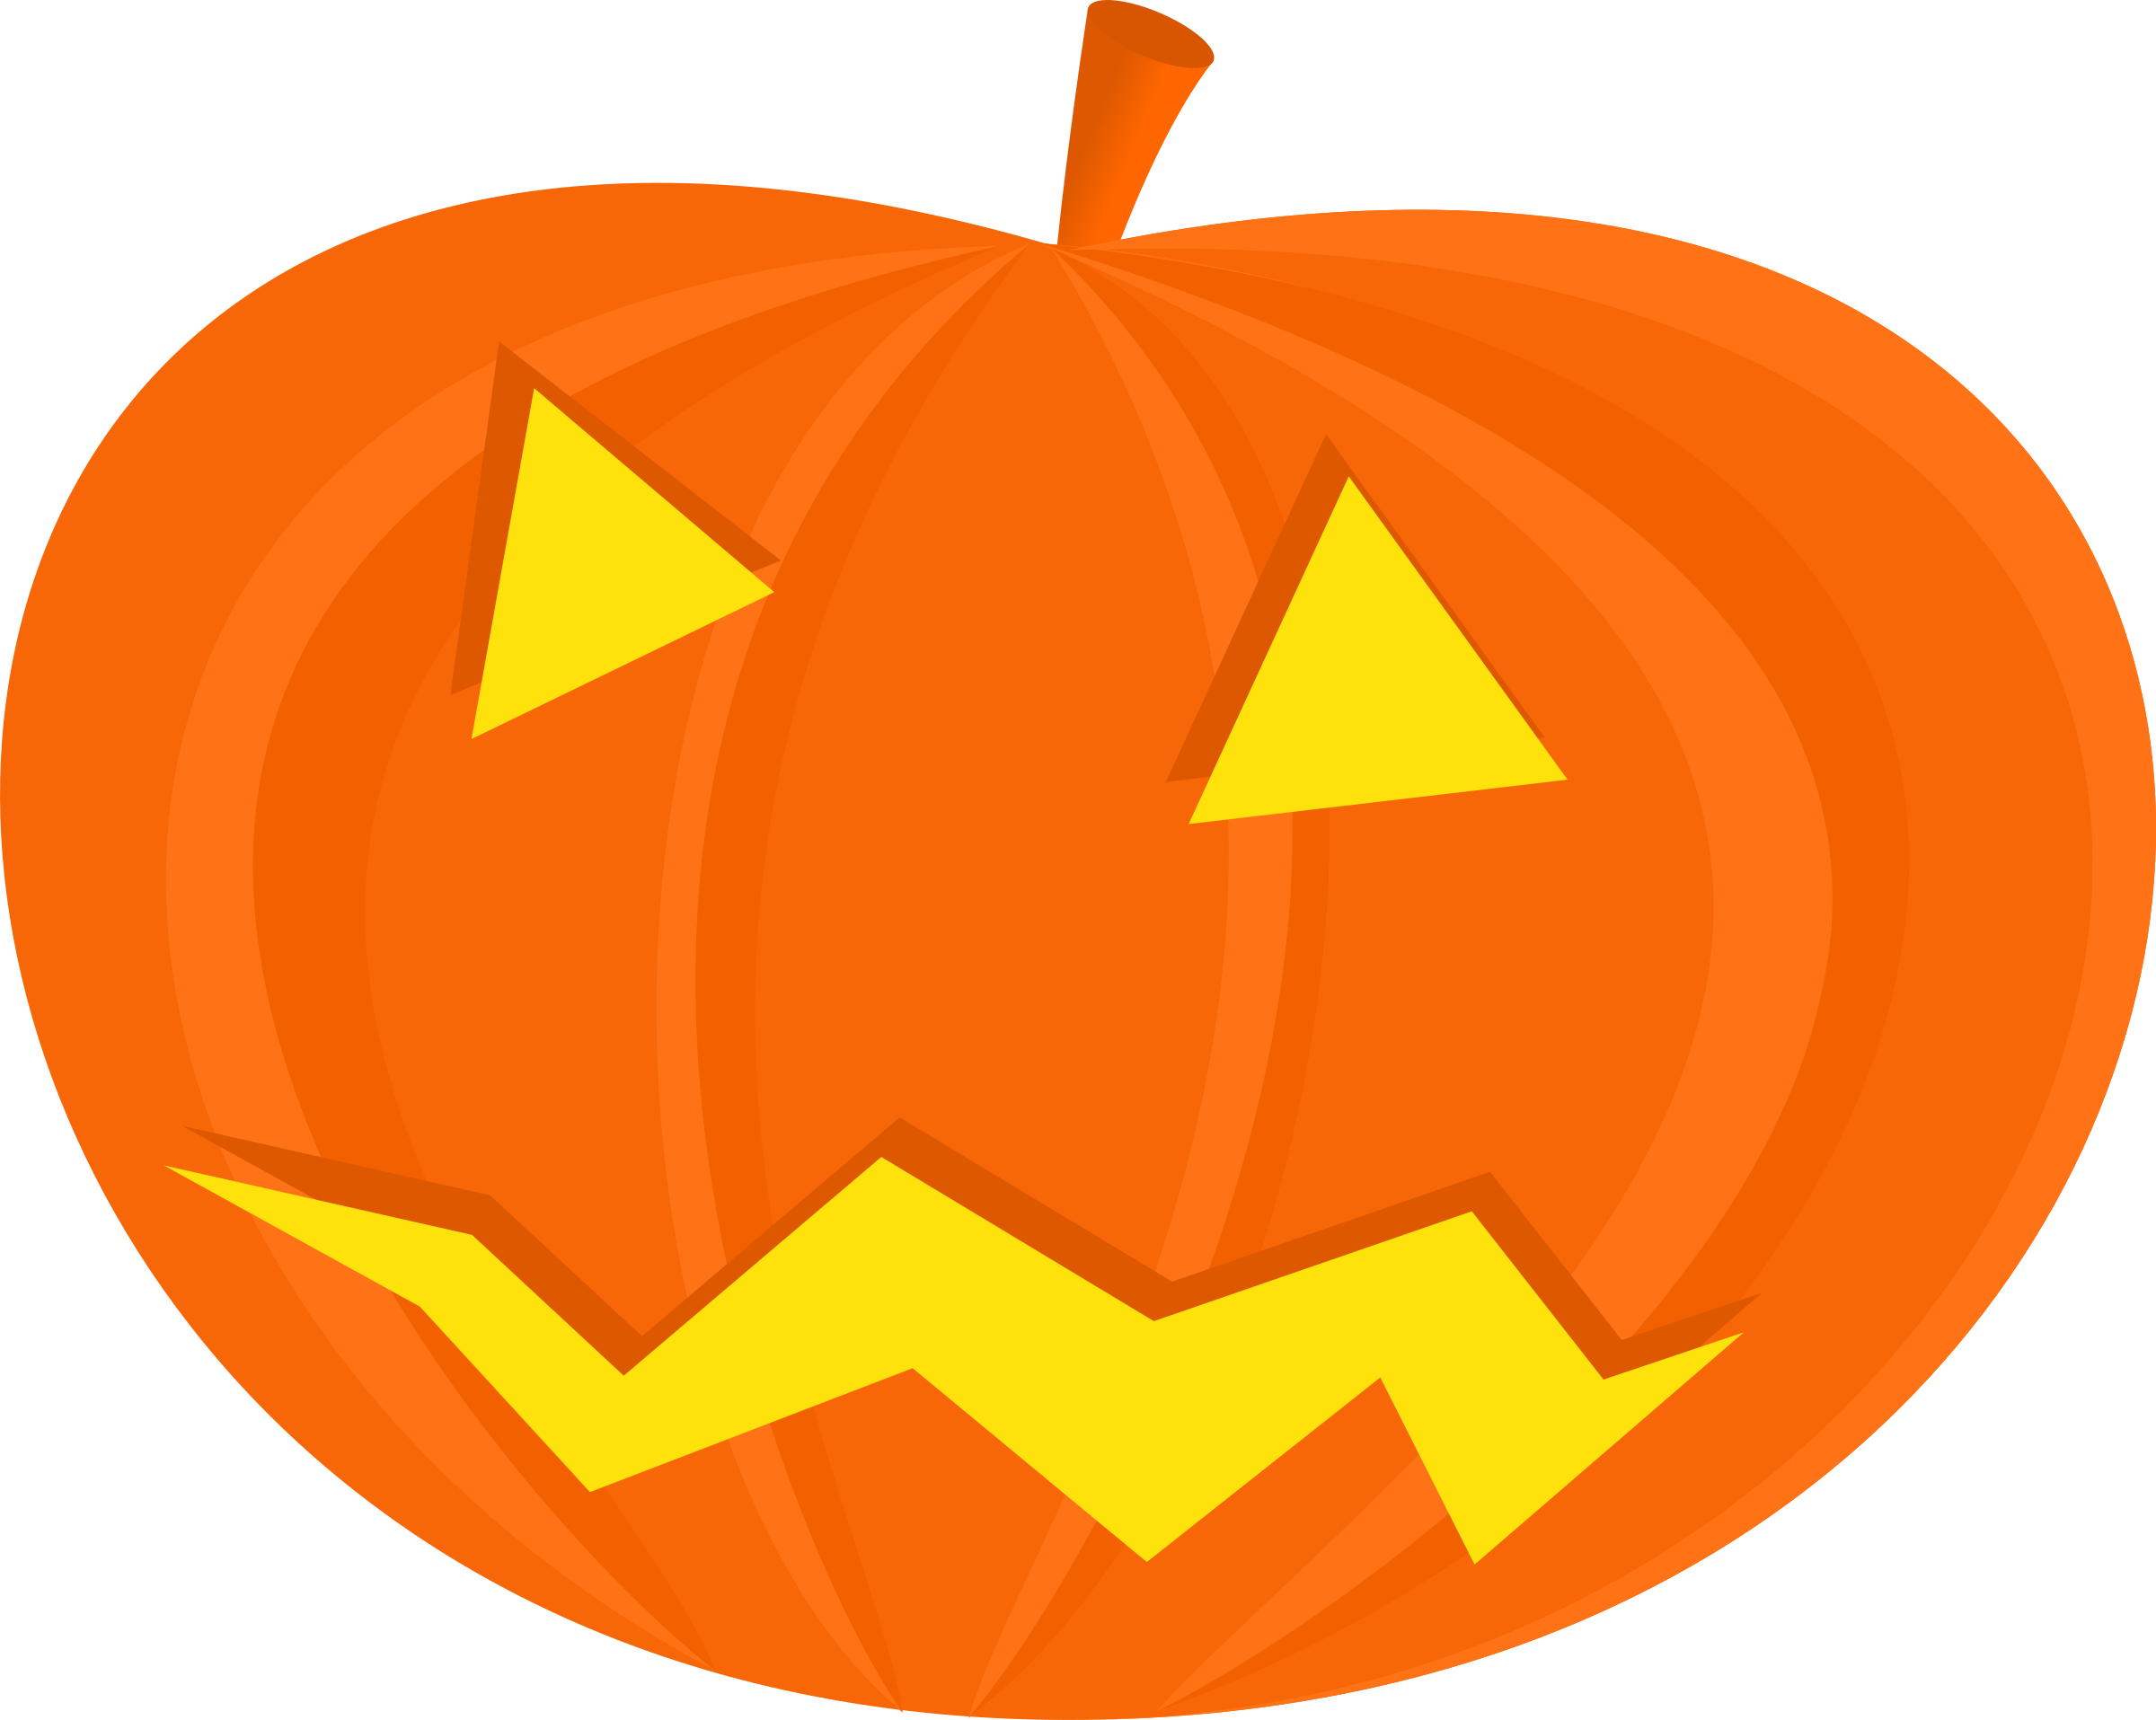 Scary pumpkin face clipart image transparent download Clipart - halloween pumpkins image transparent download